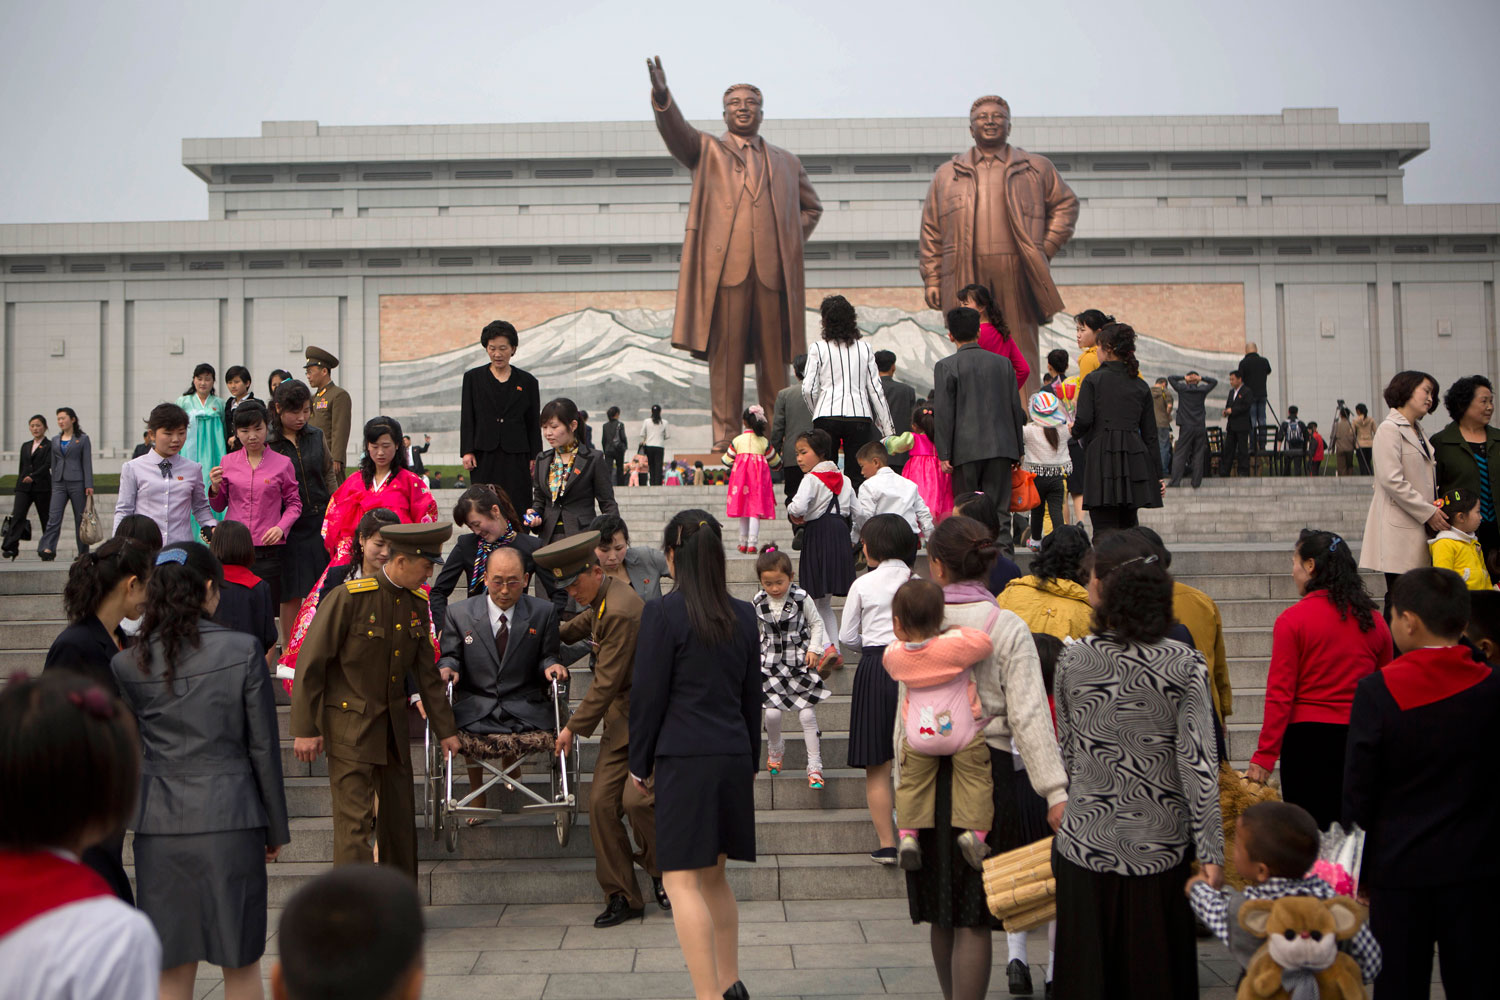 North Koreans arrive at Pyongyang's Mansu Hill to pay their respects to bronze statues of the late leaders Kim Il Sung and Kim Jong Il at Munsu Hill in Pyongyang on Tuesday, April 15, 2014, the official birthday of Kim Il Sung.